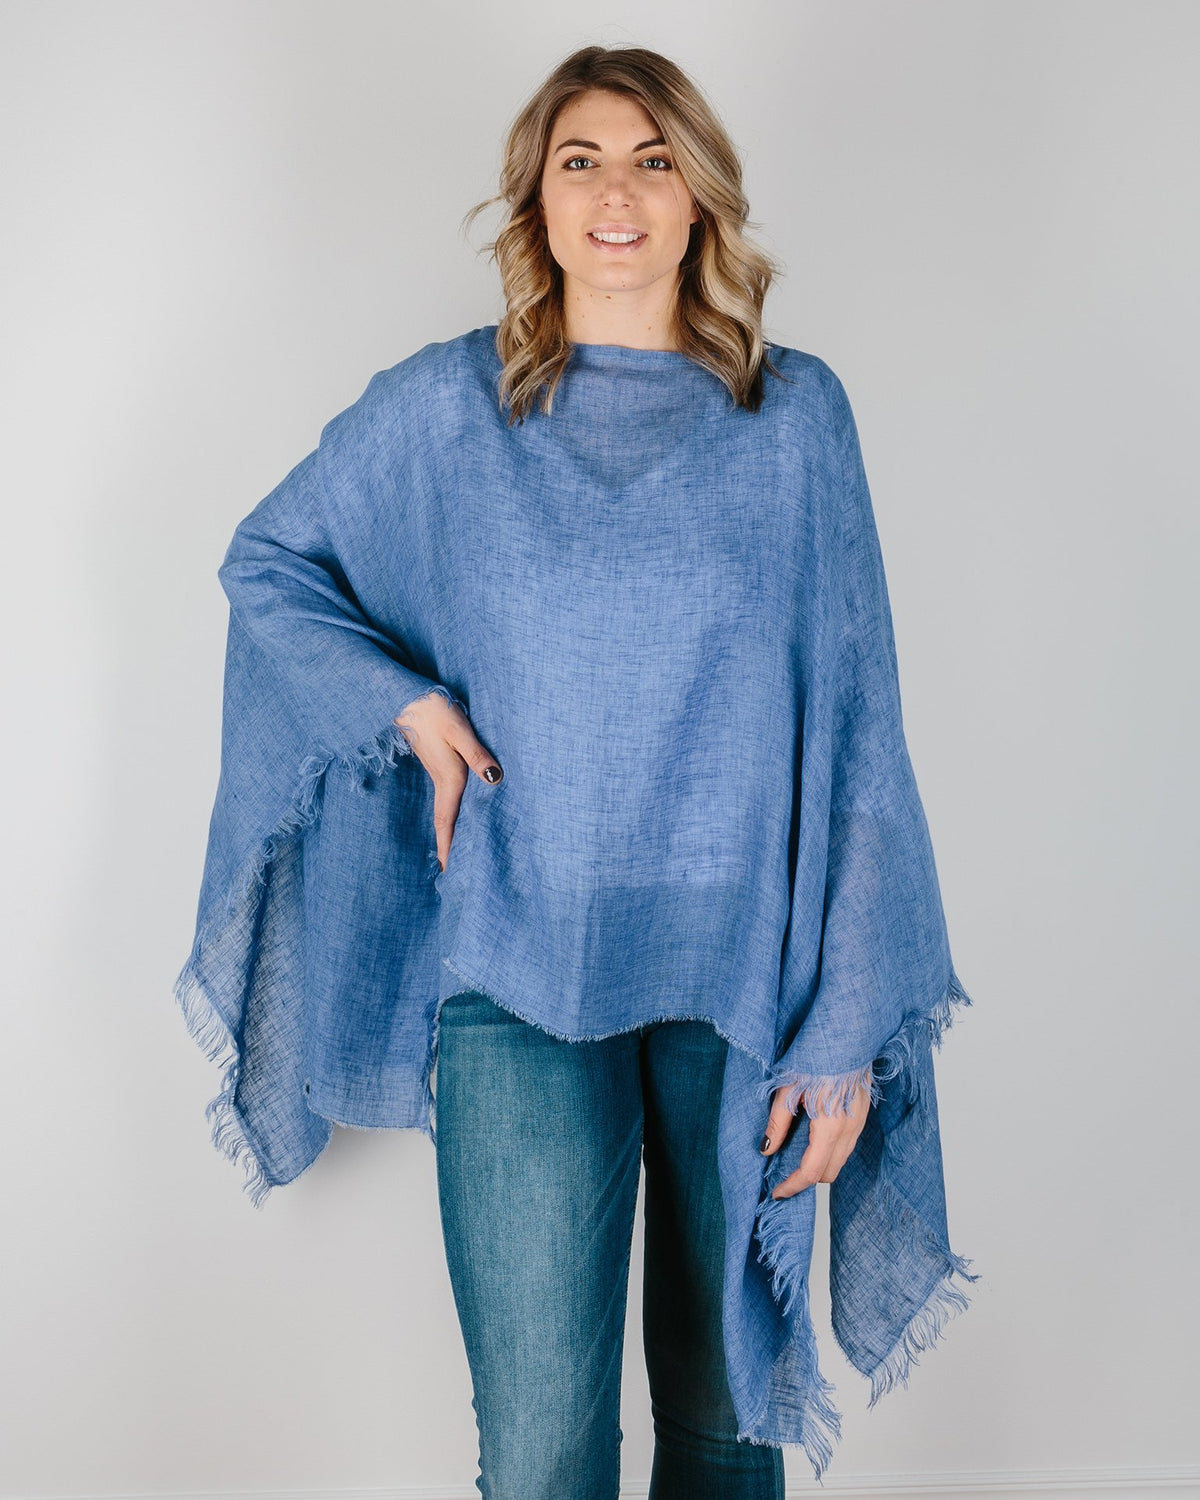 Destin Accessories Jeans / O/S The Poncho